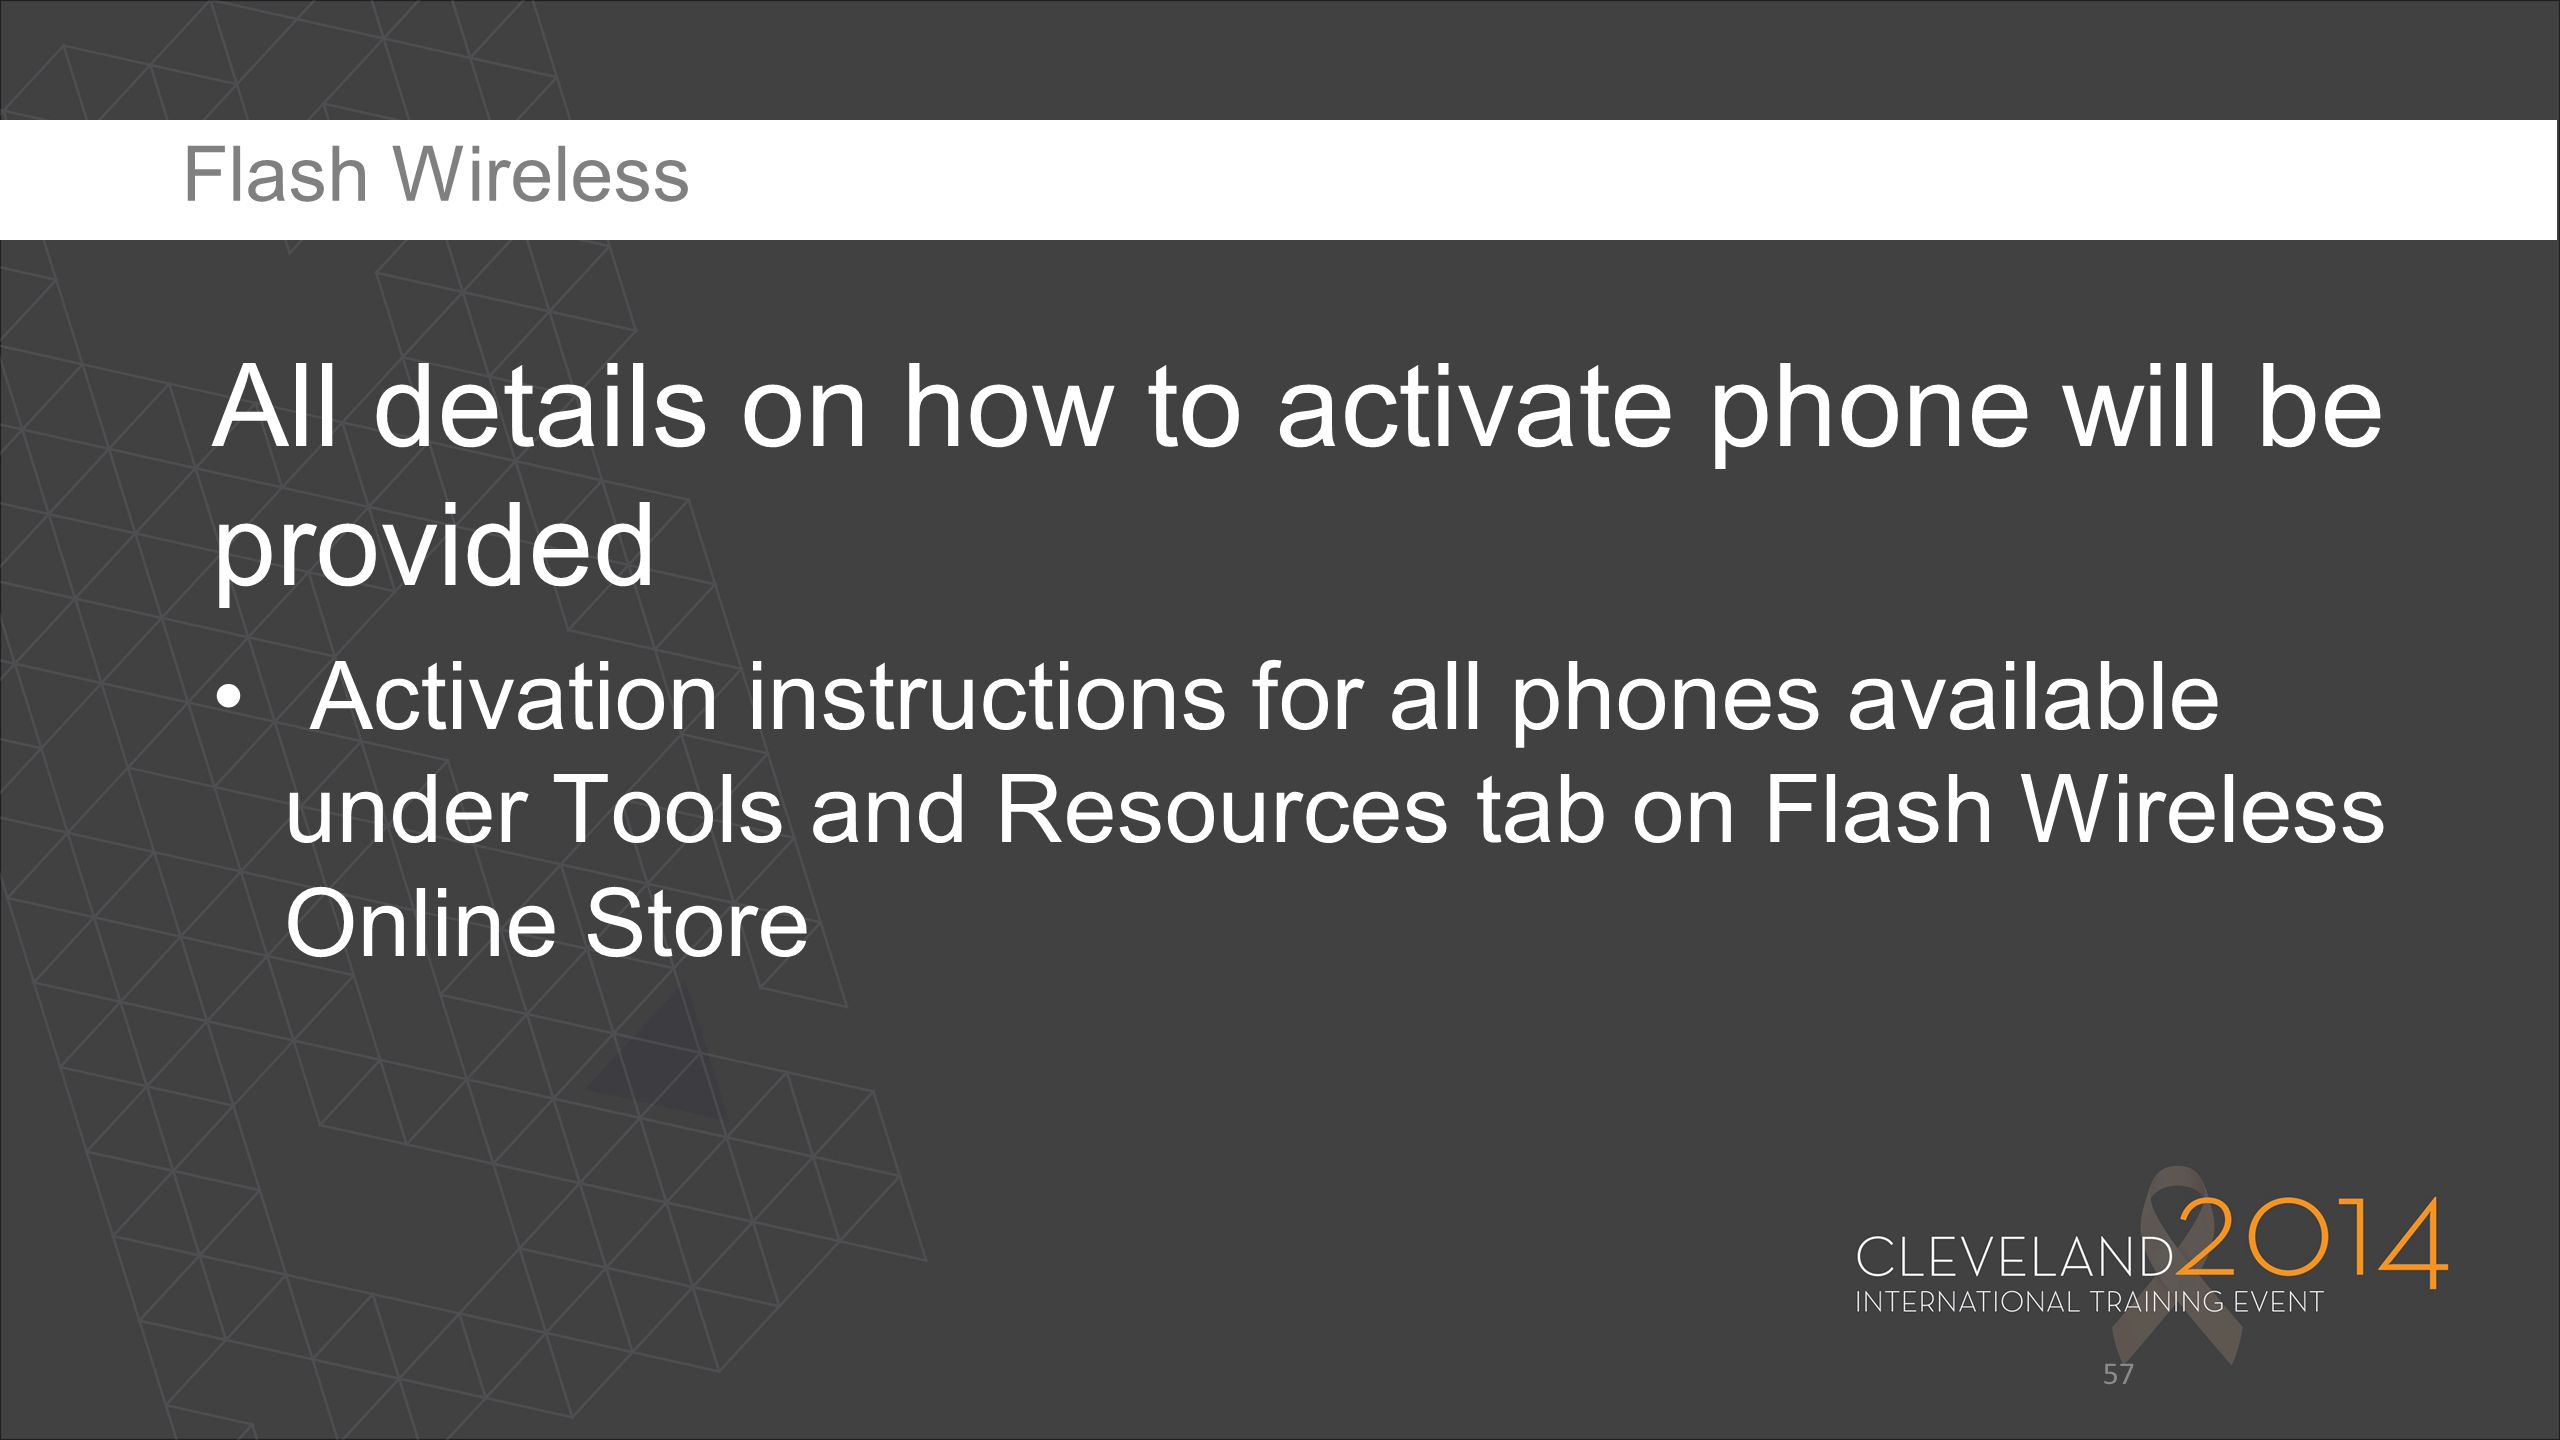 All details on how to activate phone will be provided